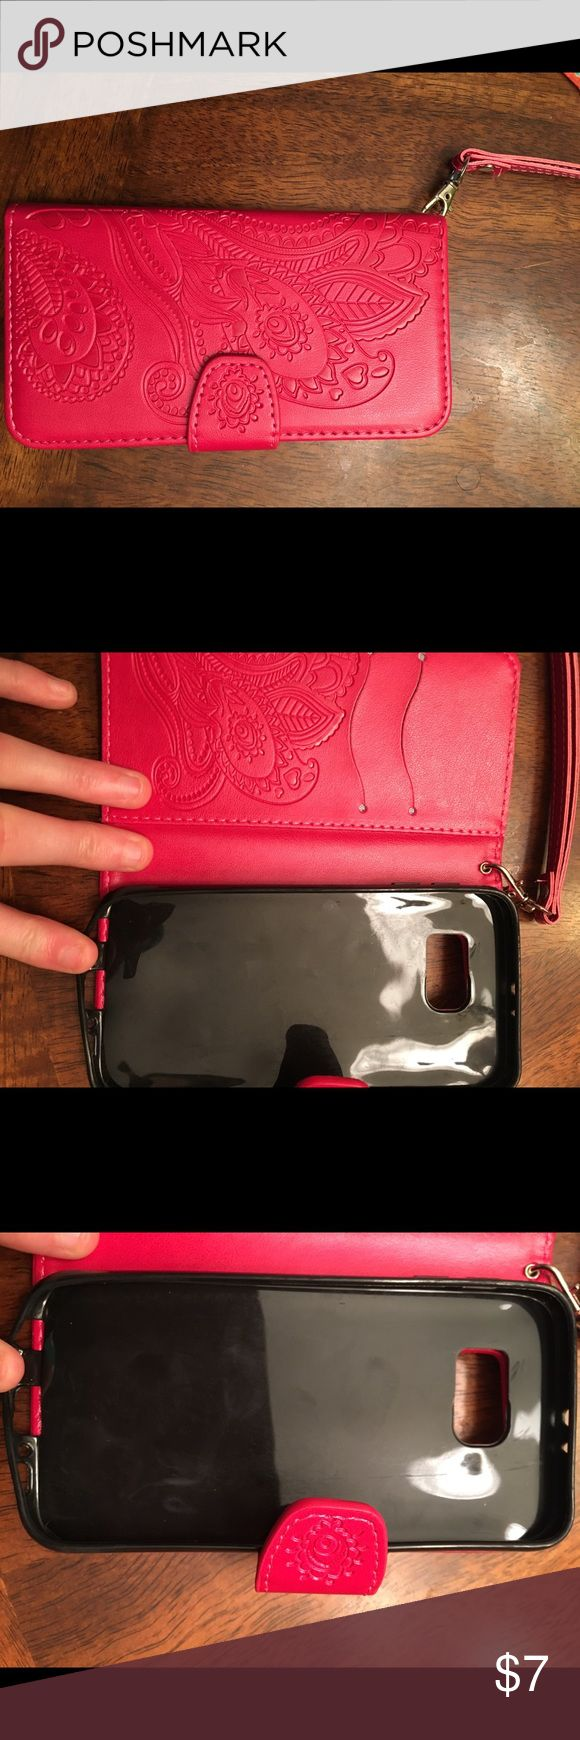 Brand new hot pink wallet phone case Brand new galaxy s6 hot pink wallet phone case Accessories Phone Cases